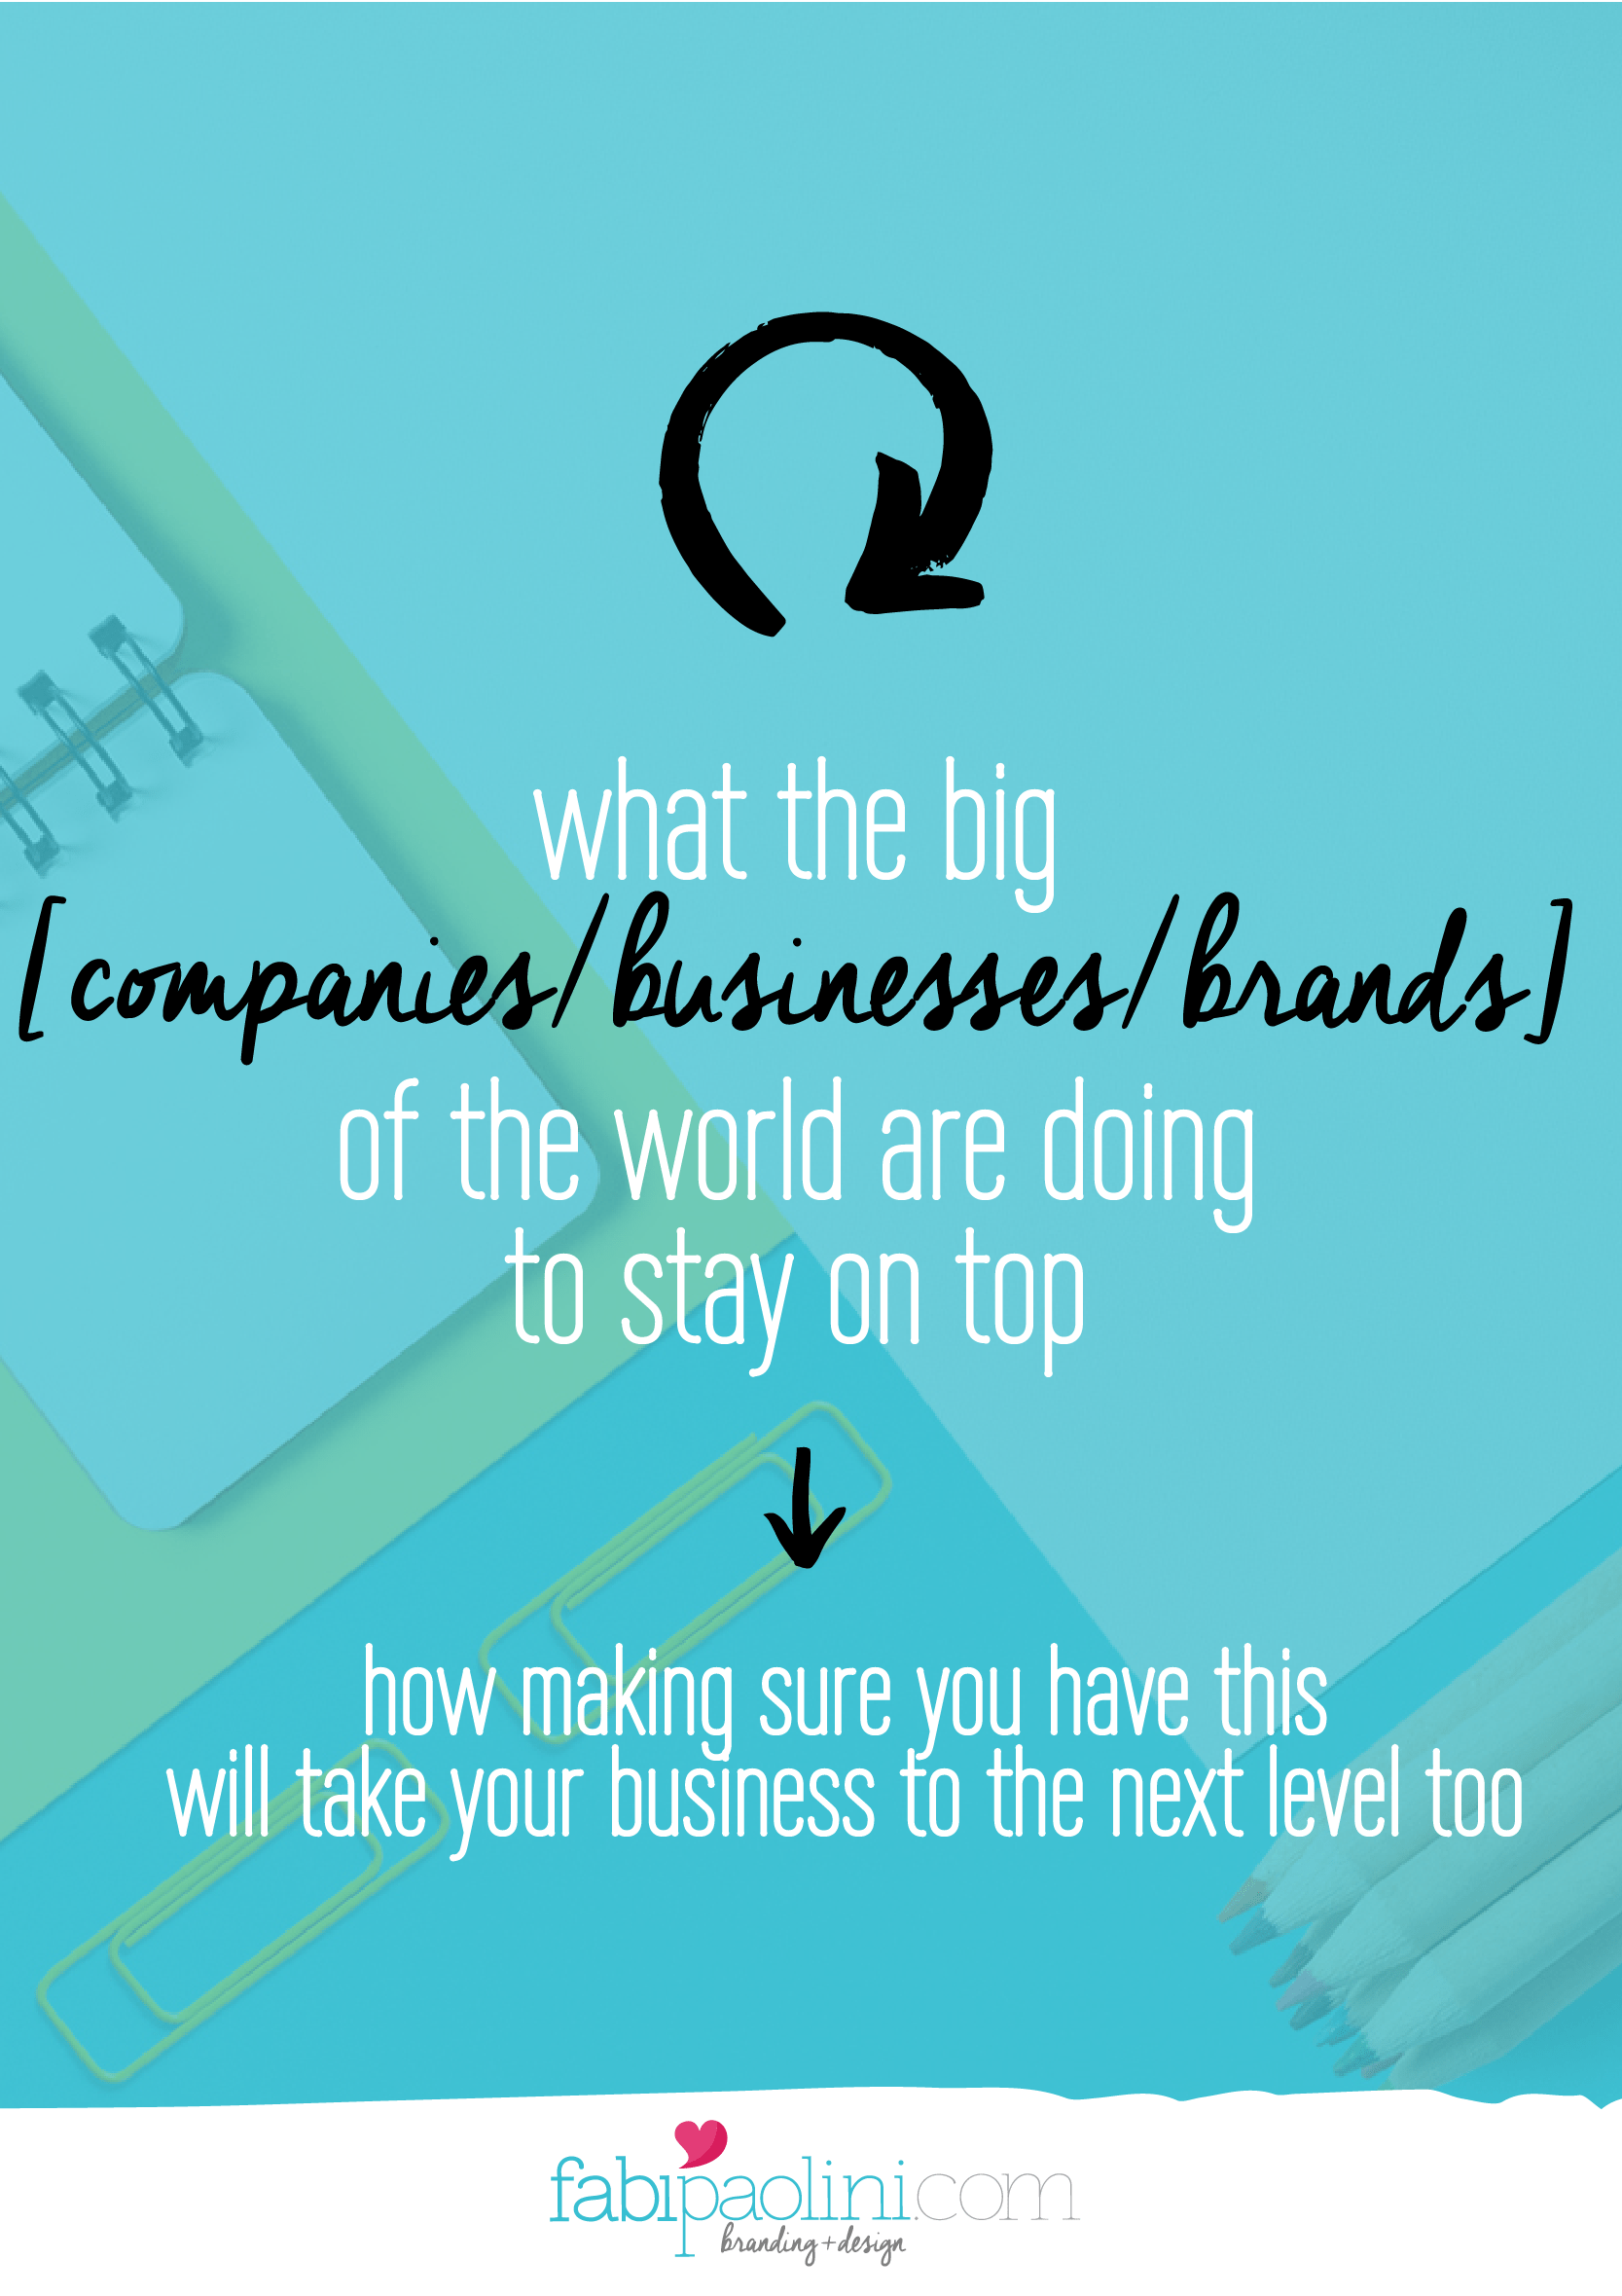 What the big businesses, companies and brands are doing to stay on top and what YOU could be doing to stay on top too! Branding